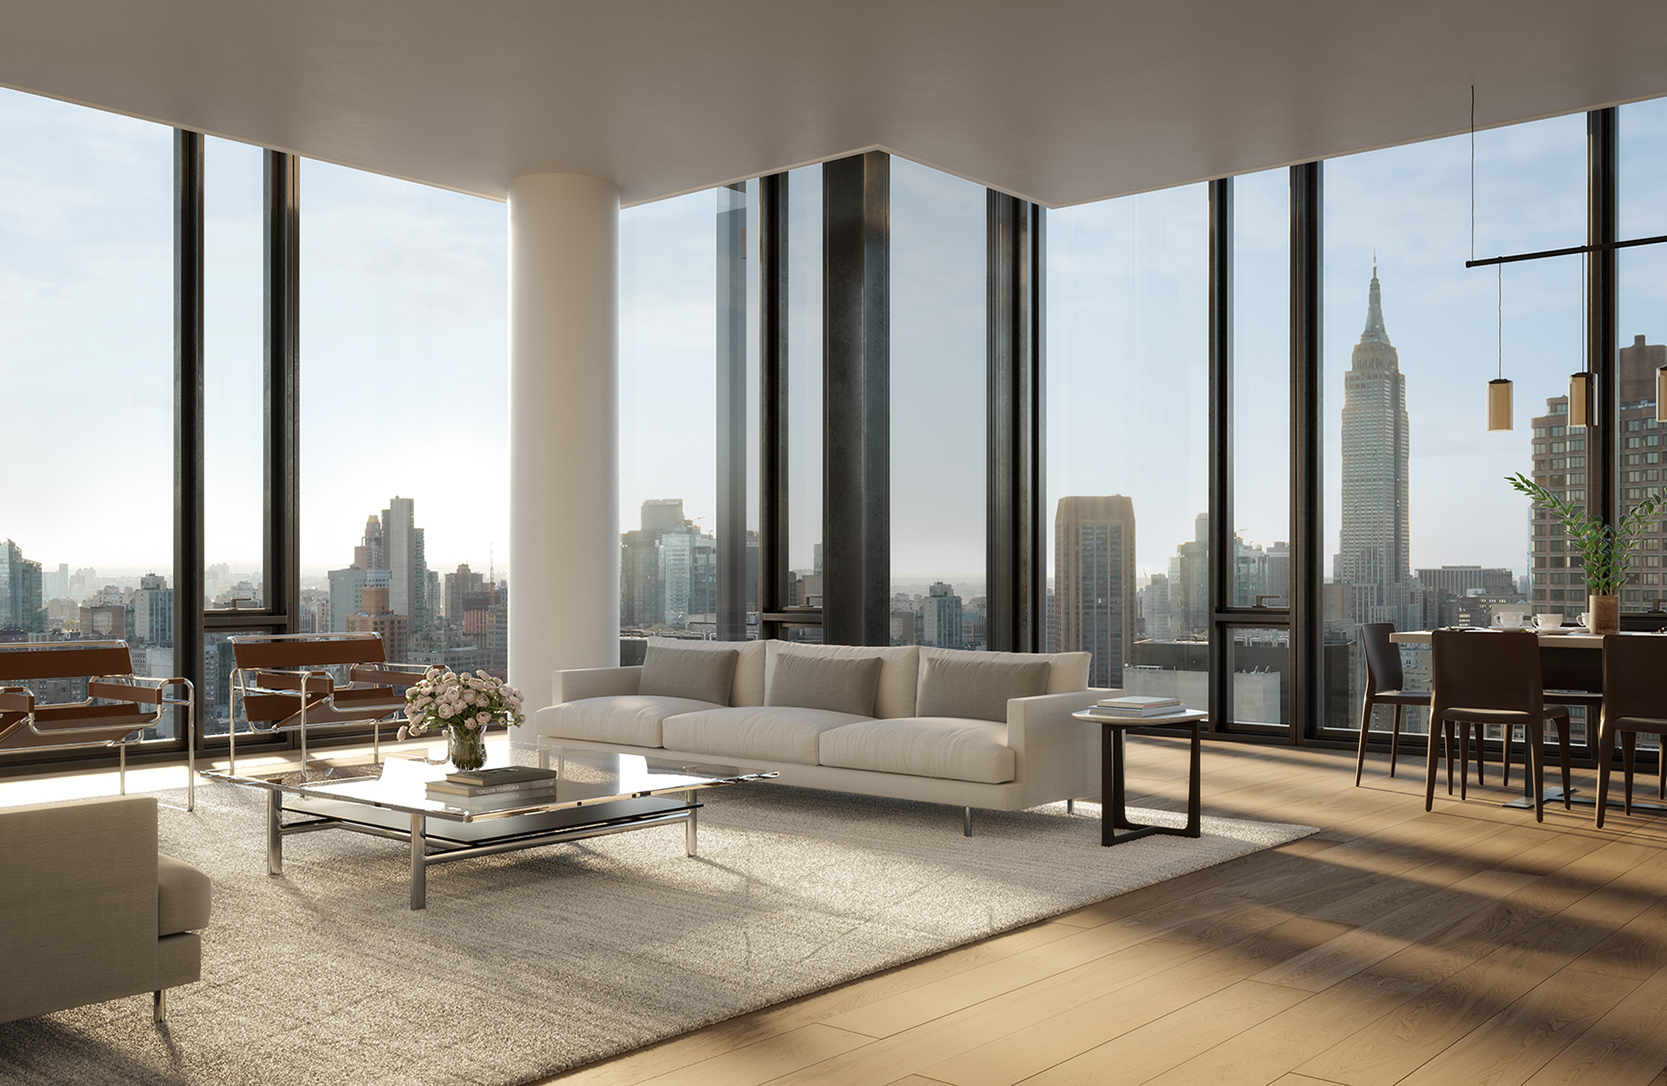 Condos with View of Empire State Building